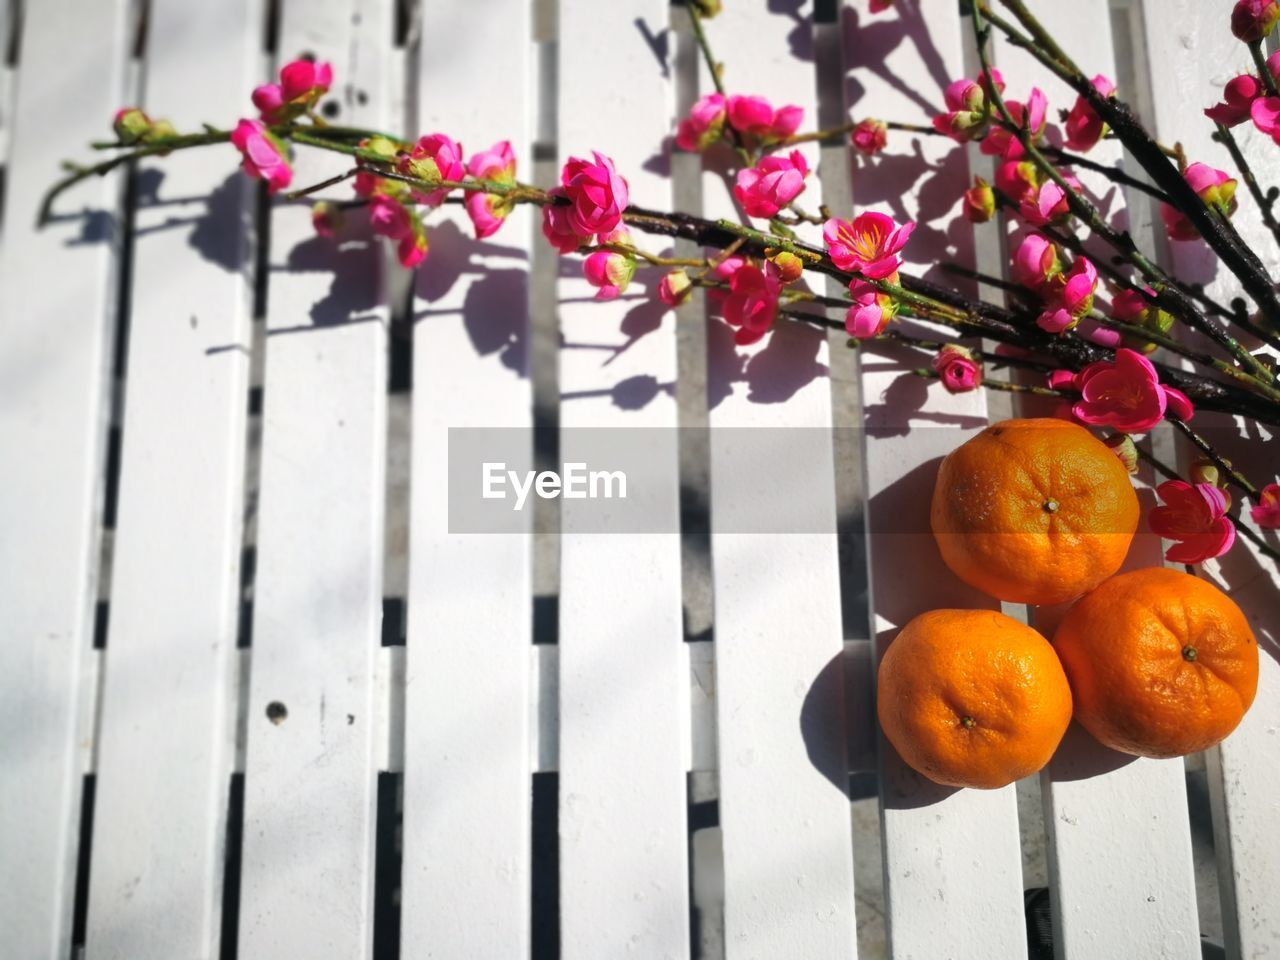 food, food and drink, freshness, healthy eating, fruit, orange color, no people, flower, plant, wood - material, nature, flowering plant, wellbeing, citrus fruit, close-up, growth, outdoors, orange, day, orange - fruit, ripe